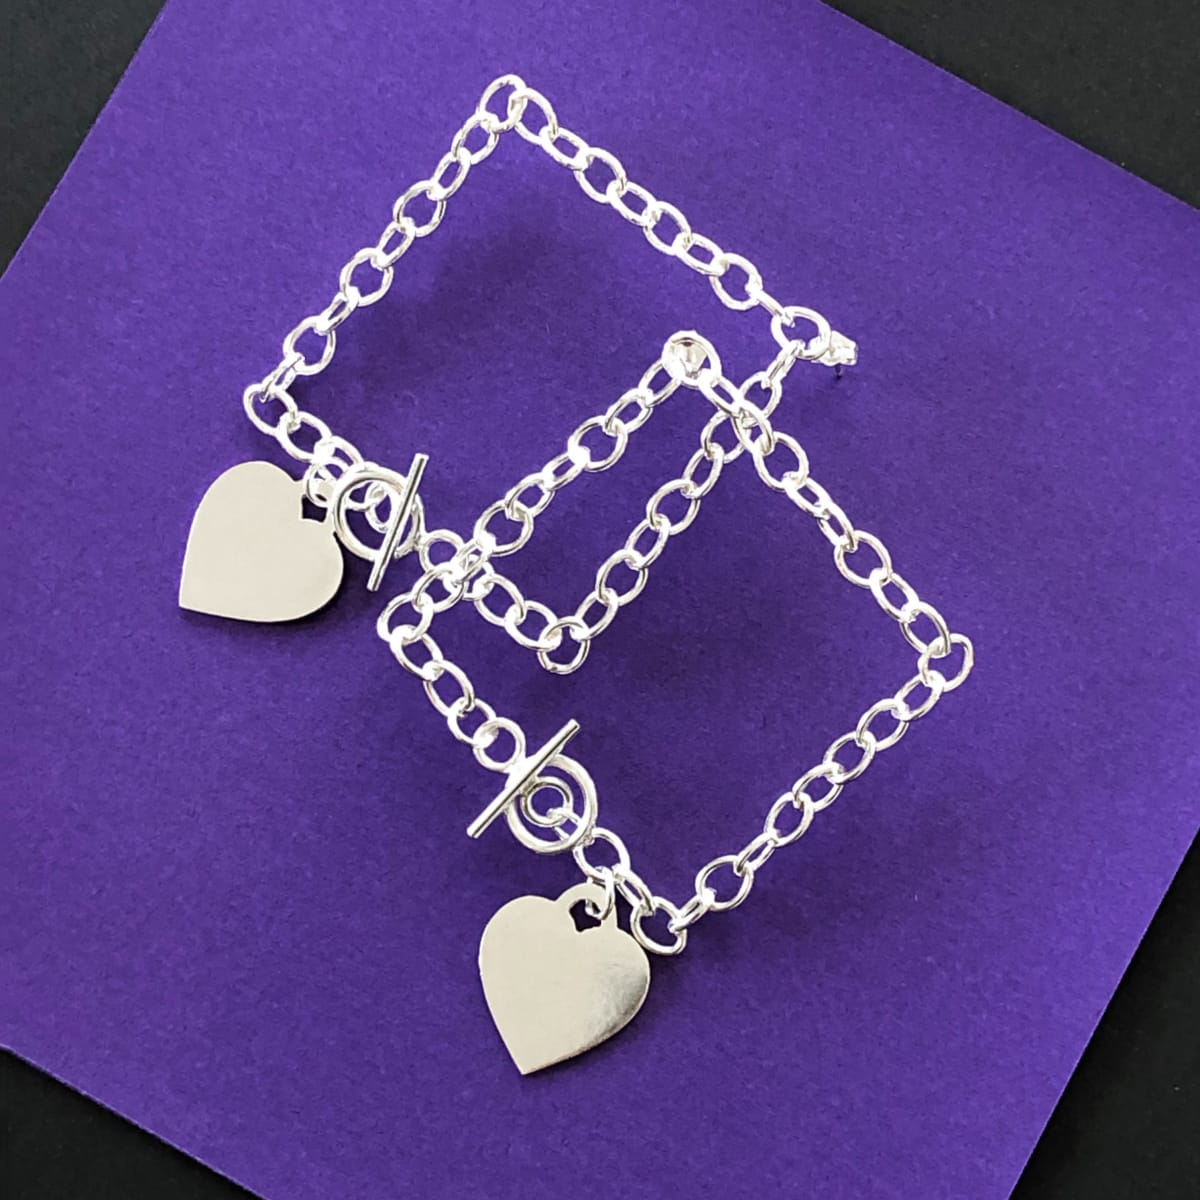 Amelia Toelke, Untitled